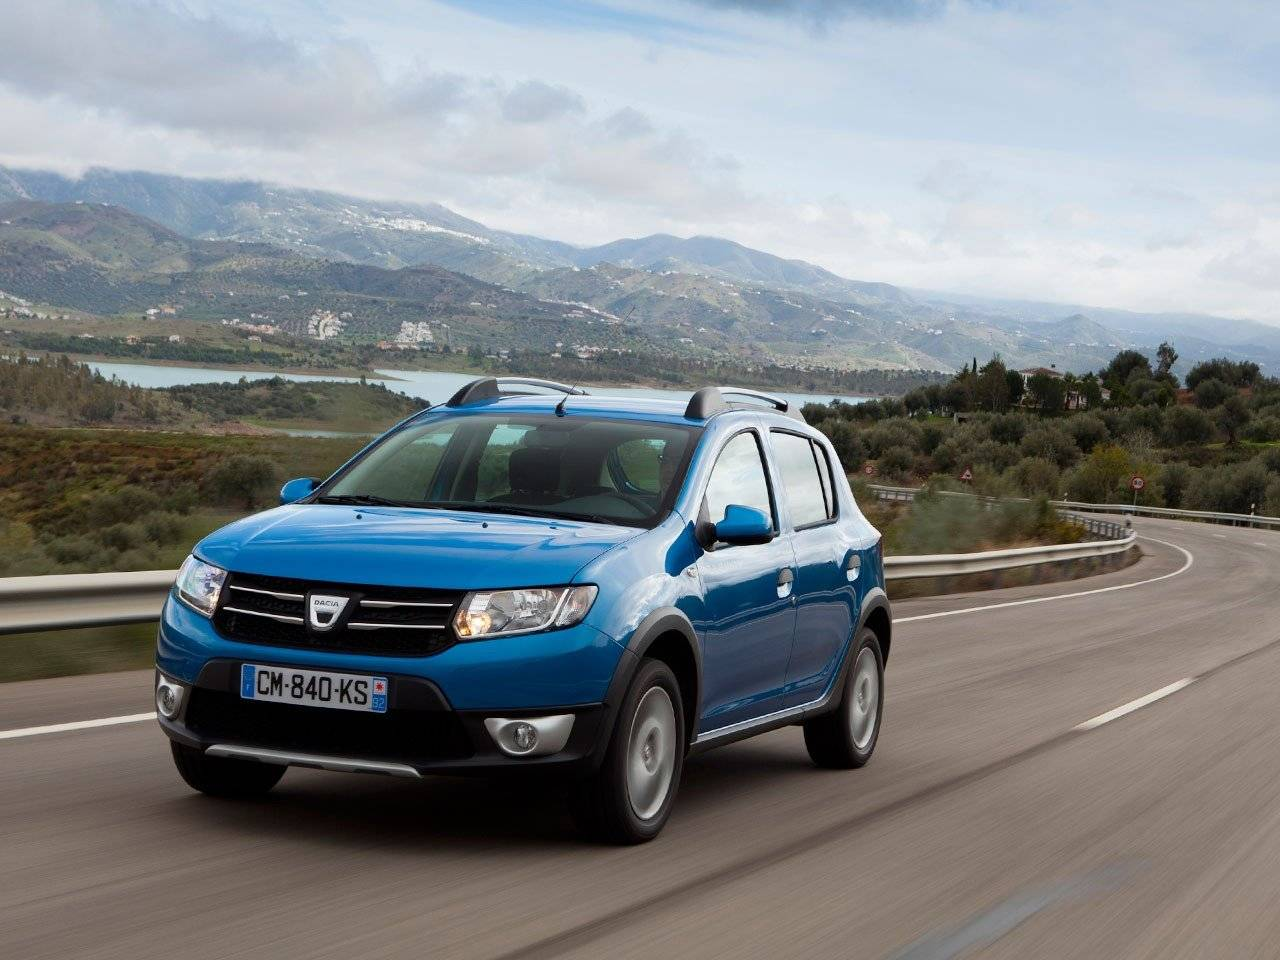 test dacia sandero stepway autotests. Black Bedroom Furniture Sets. Home Design Ideas